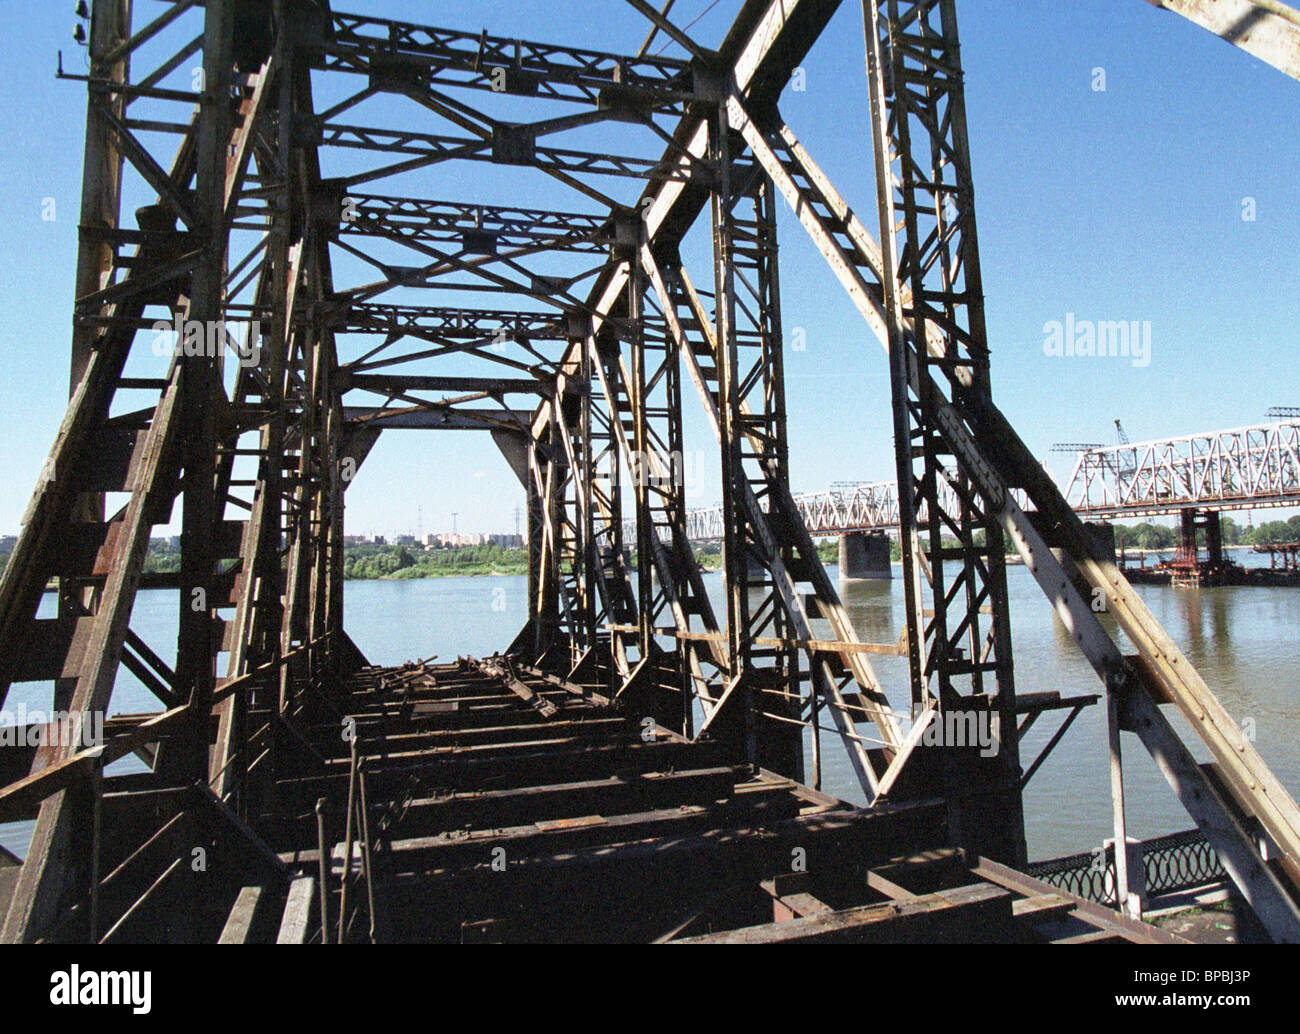 A bridge span of the Trans-Siberian railway as a museum exhibit - Stock Image